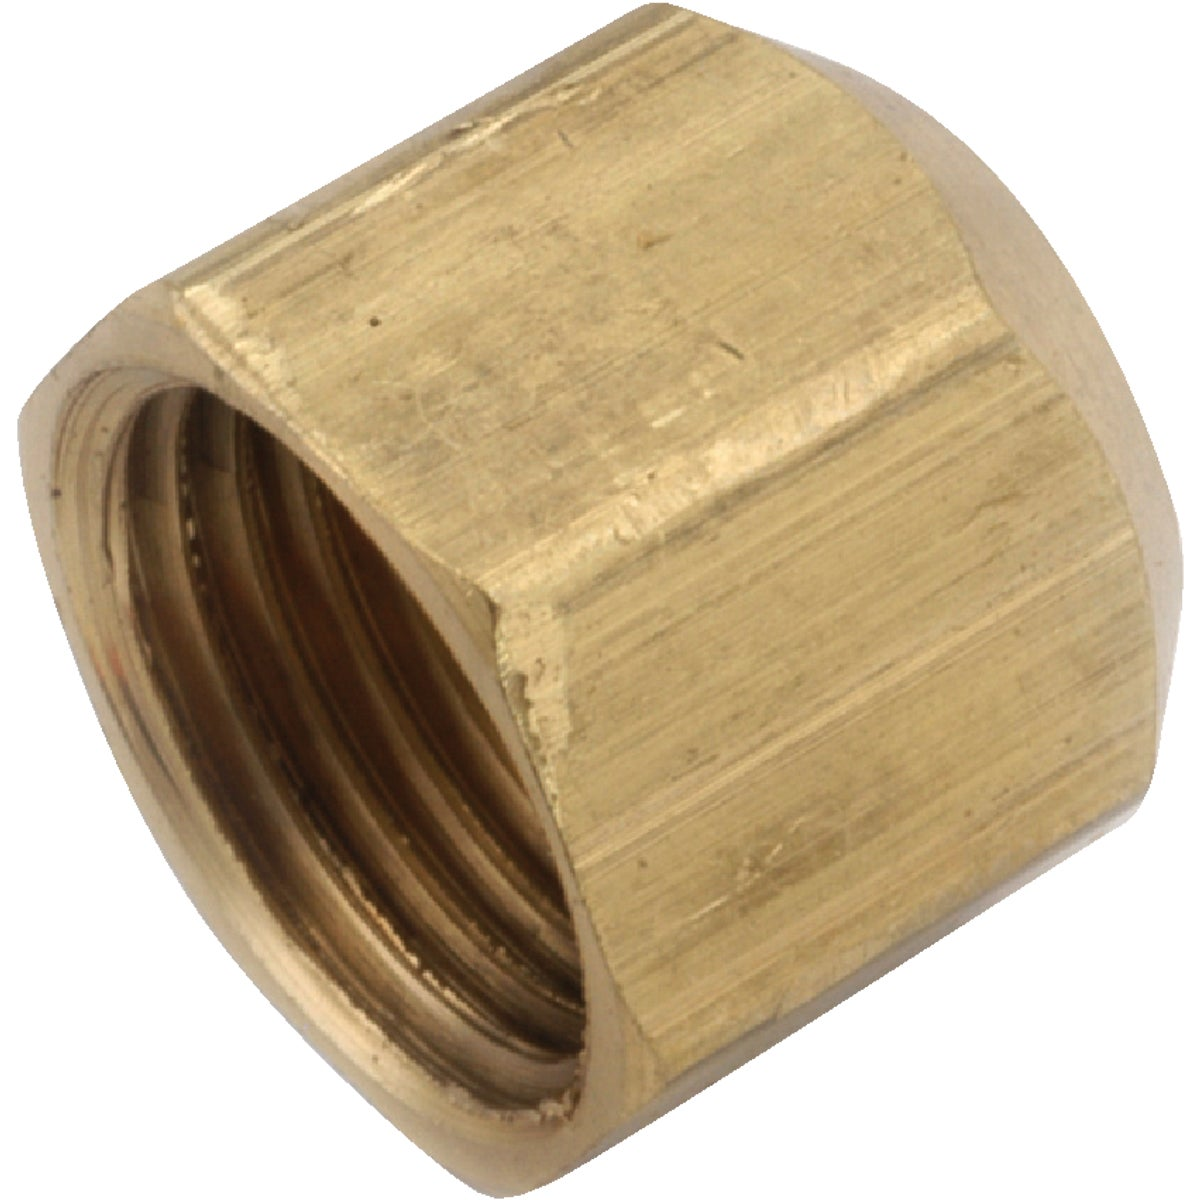 "5/8"" FLARE CAP - 754040-10 by Anderson Metals Corp"